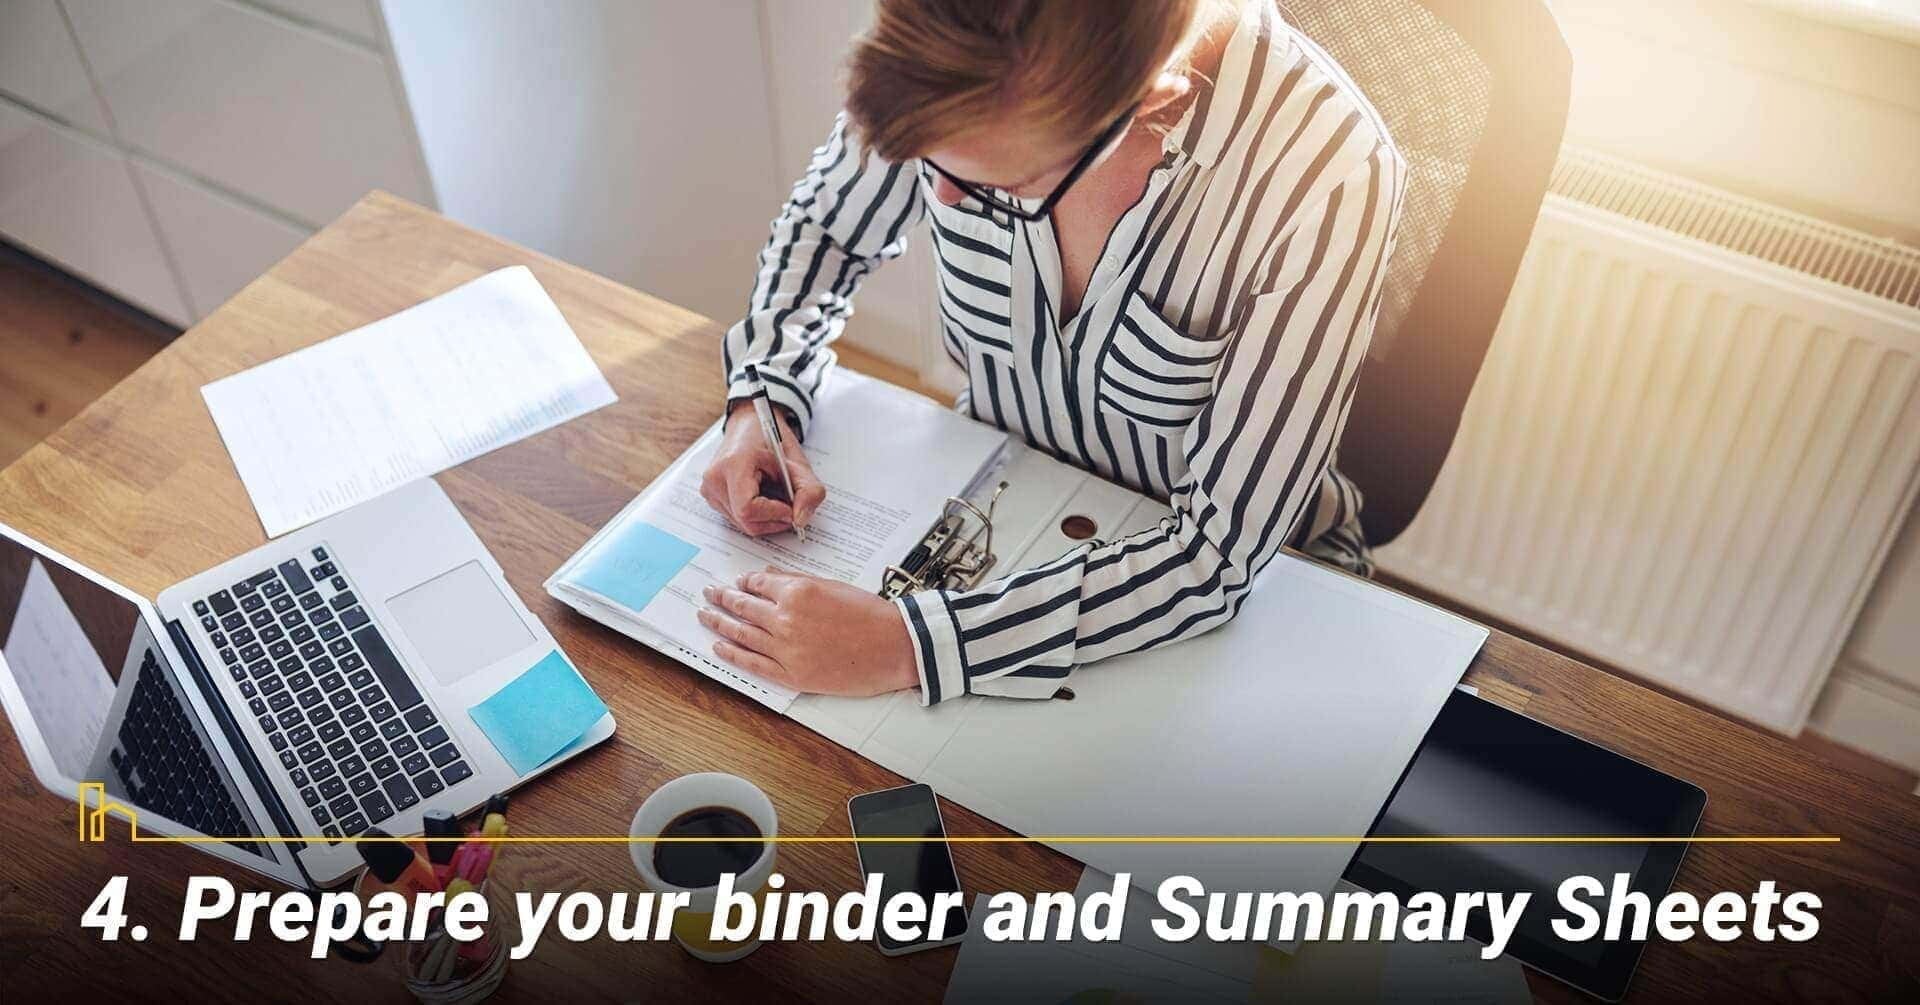 Prepare your binder and Summary Sheets